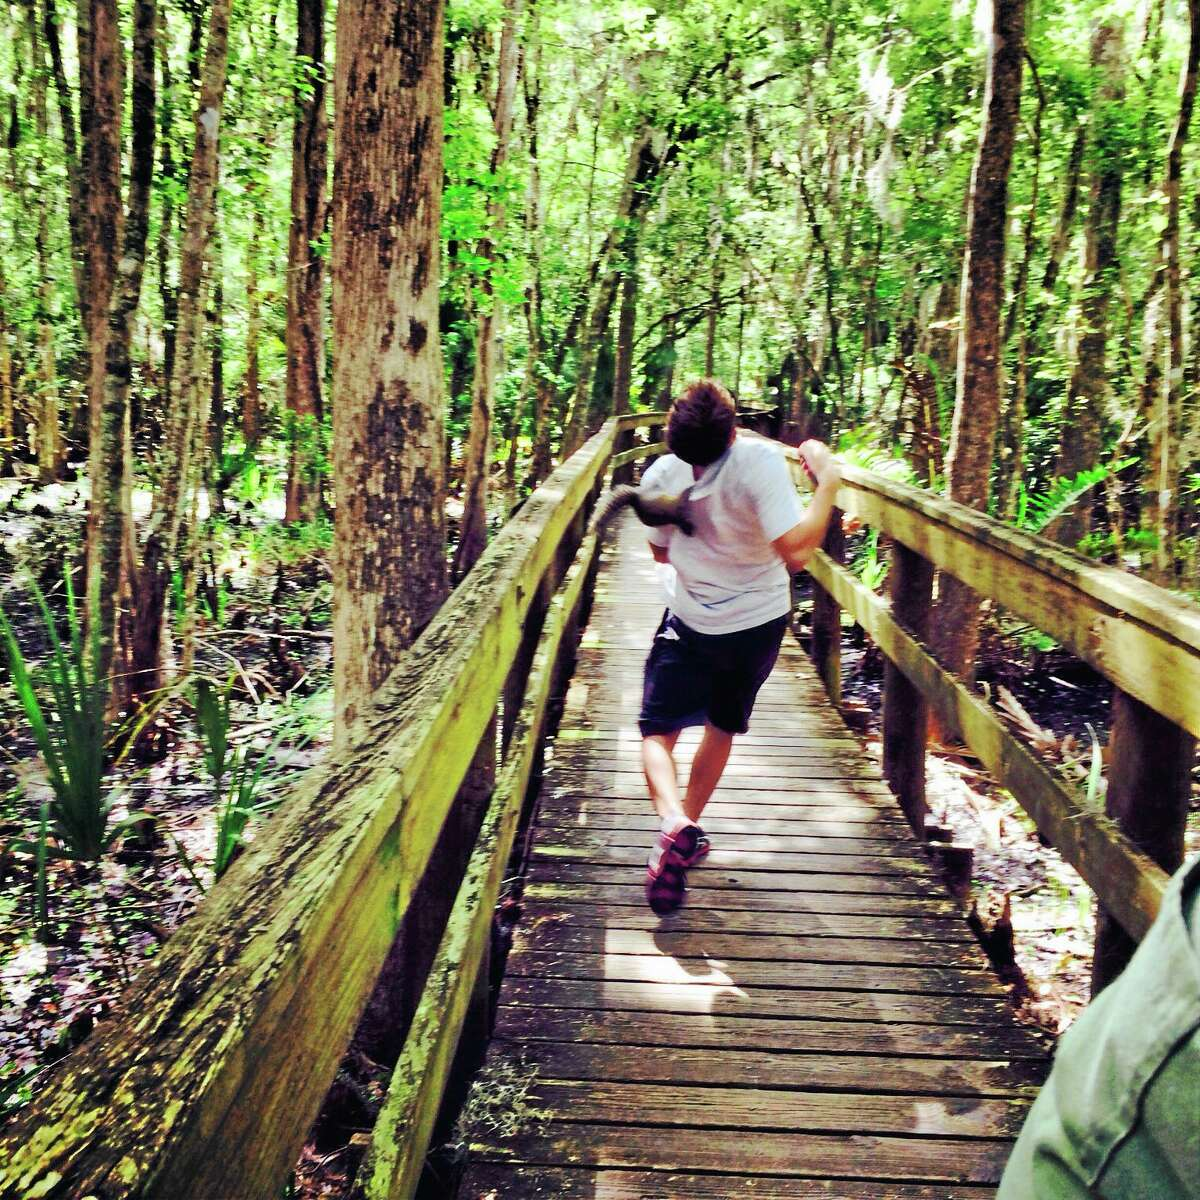 A squirrel clings to the back of Brian Genest at John Chestnut Park near Tampa, Florida.